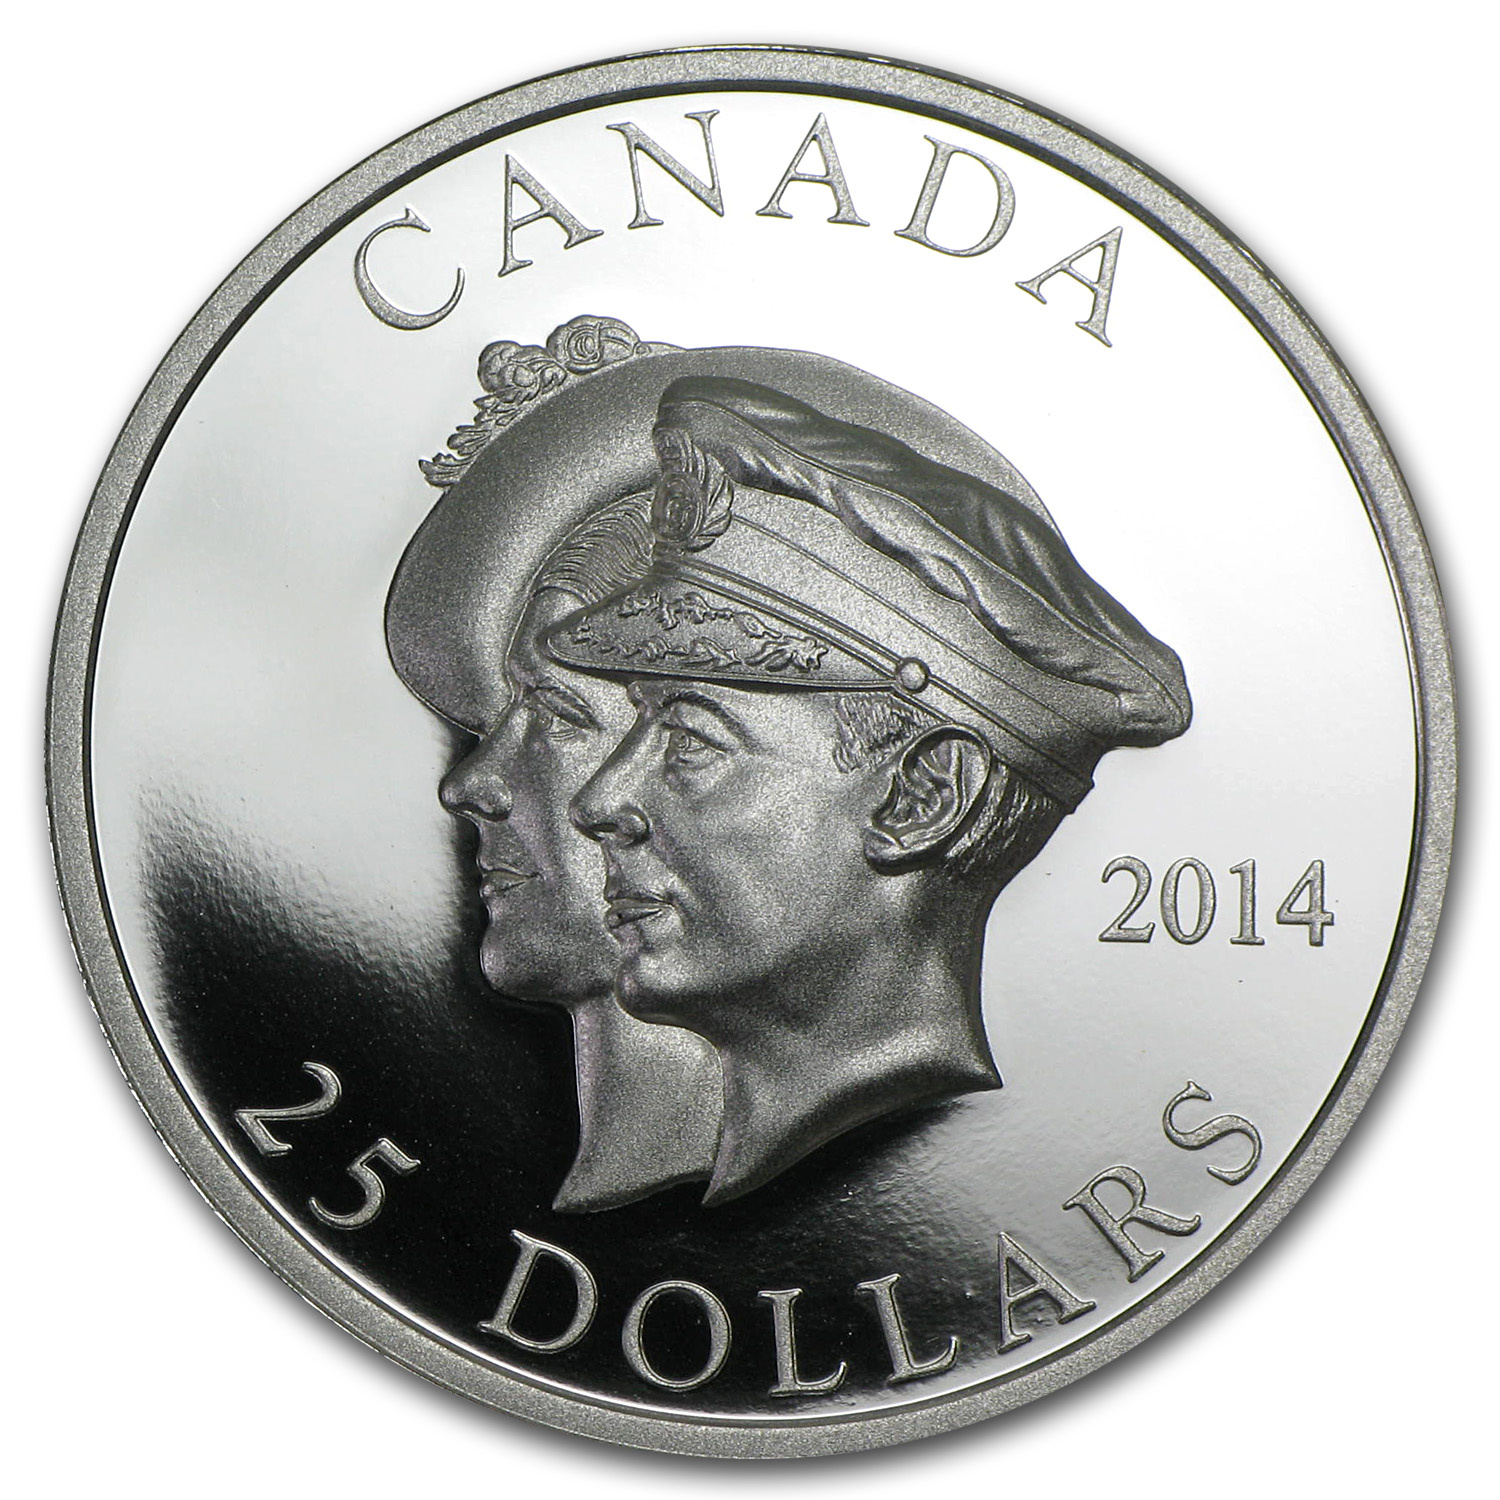 2014 Canada 1 oz Silver 75th Anniv of the First Royal Visit (UHR)